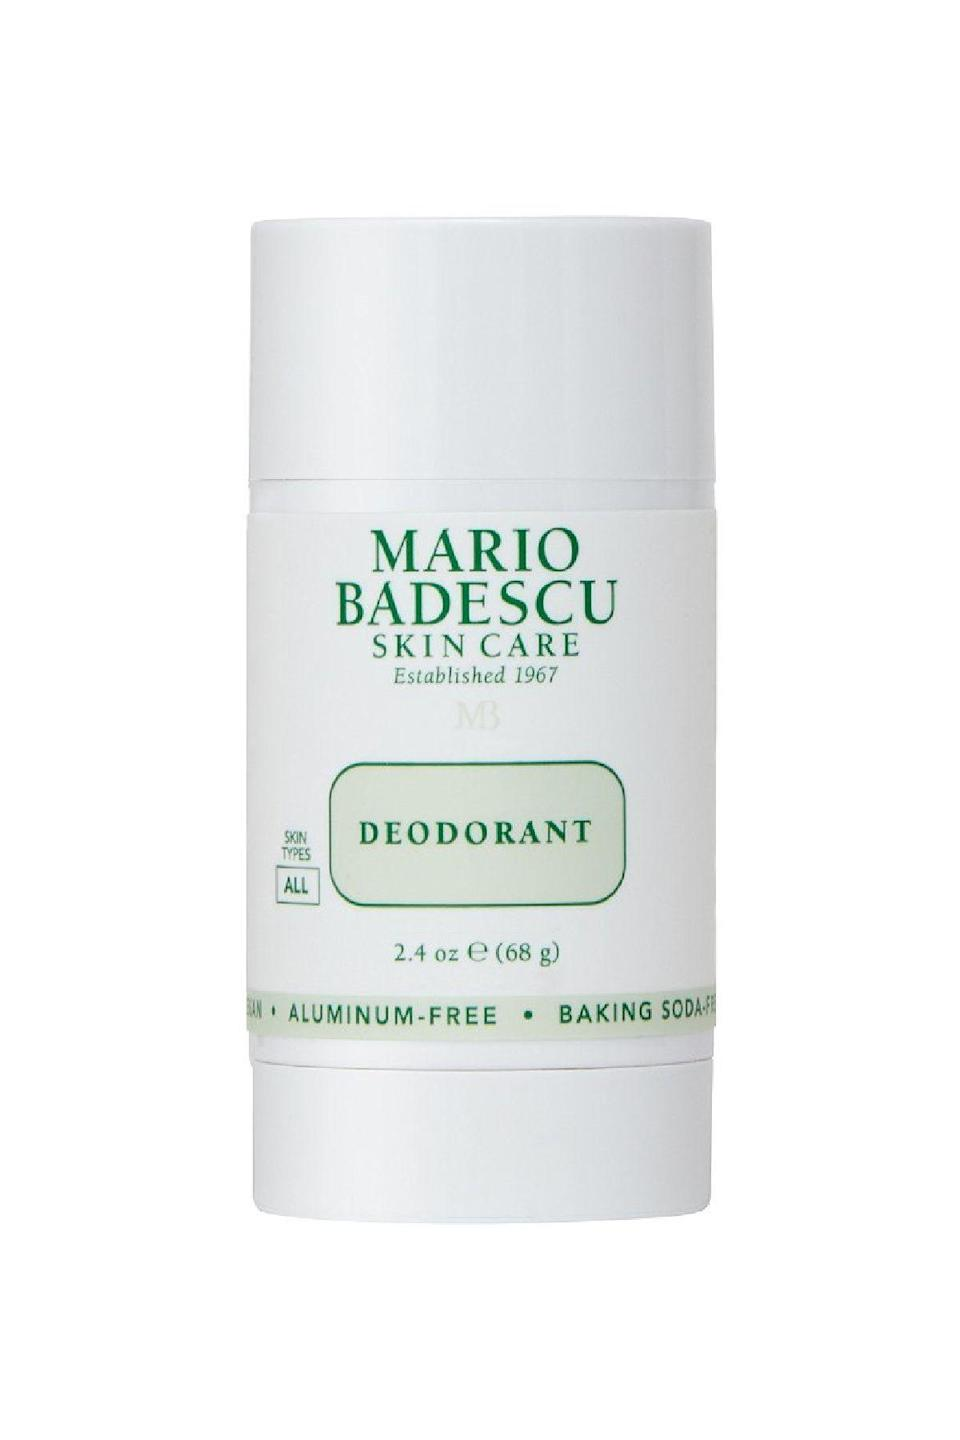 "<p><strong>Mario Badescu</strong></p><p>ulta.com</p><p><strong>$14.00</strong></p><p><a href=""https://go.redirectingat.com?id=74968X1596630&url=https%3A%2F%2Fwww.ulta.com%2Fdeodorant%3FproductId%3Dpimprod2021152&sref=https%3A%2F%2Fwww.marieclaire.com%2Fbeauty%2Fg36081134%2Fbest-deodorant-for-women%2F"" rel=""nofollow noopener"" target=""_blank"" data-ylk=""slk:SHOP IT"" class=""link rapid-noclick-resp"">SHOP IT</a></p><p>This baking soda formulation works wonders with an aluminum-free formulation that smells kind of like an herbaceous gimlet thanks to cucumber, sage, and ginger extract. </p>"